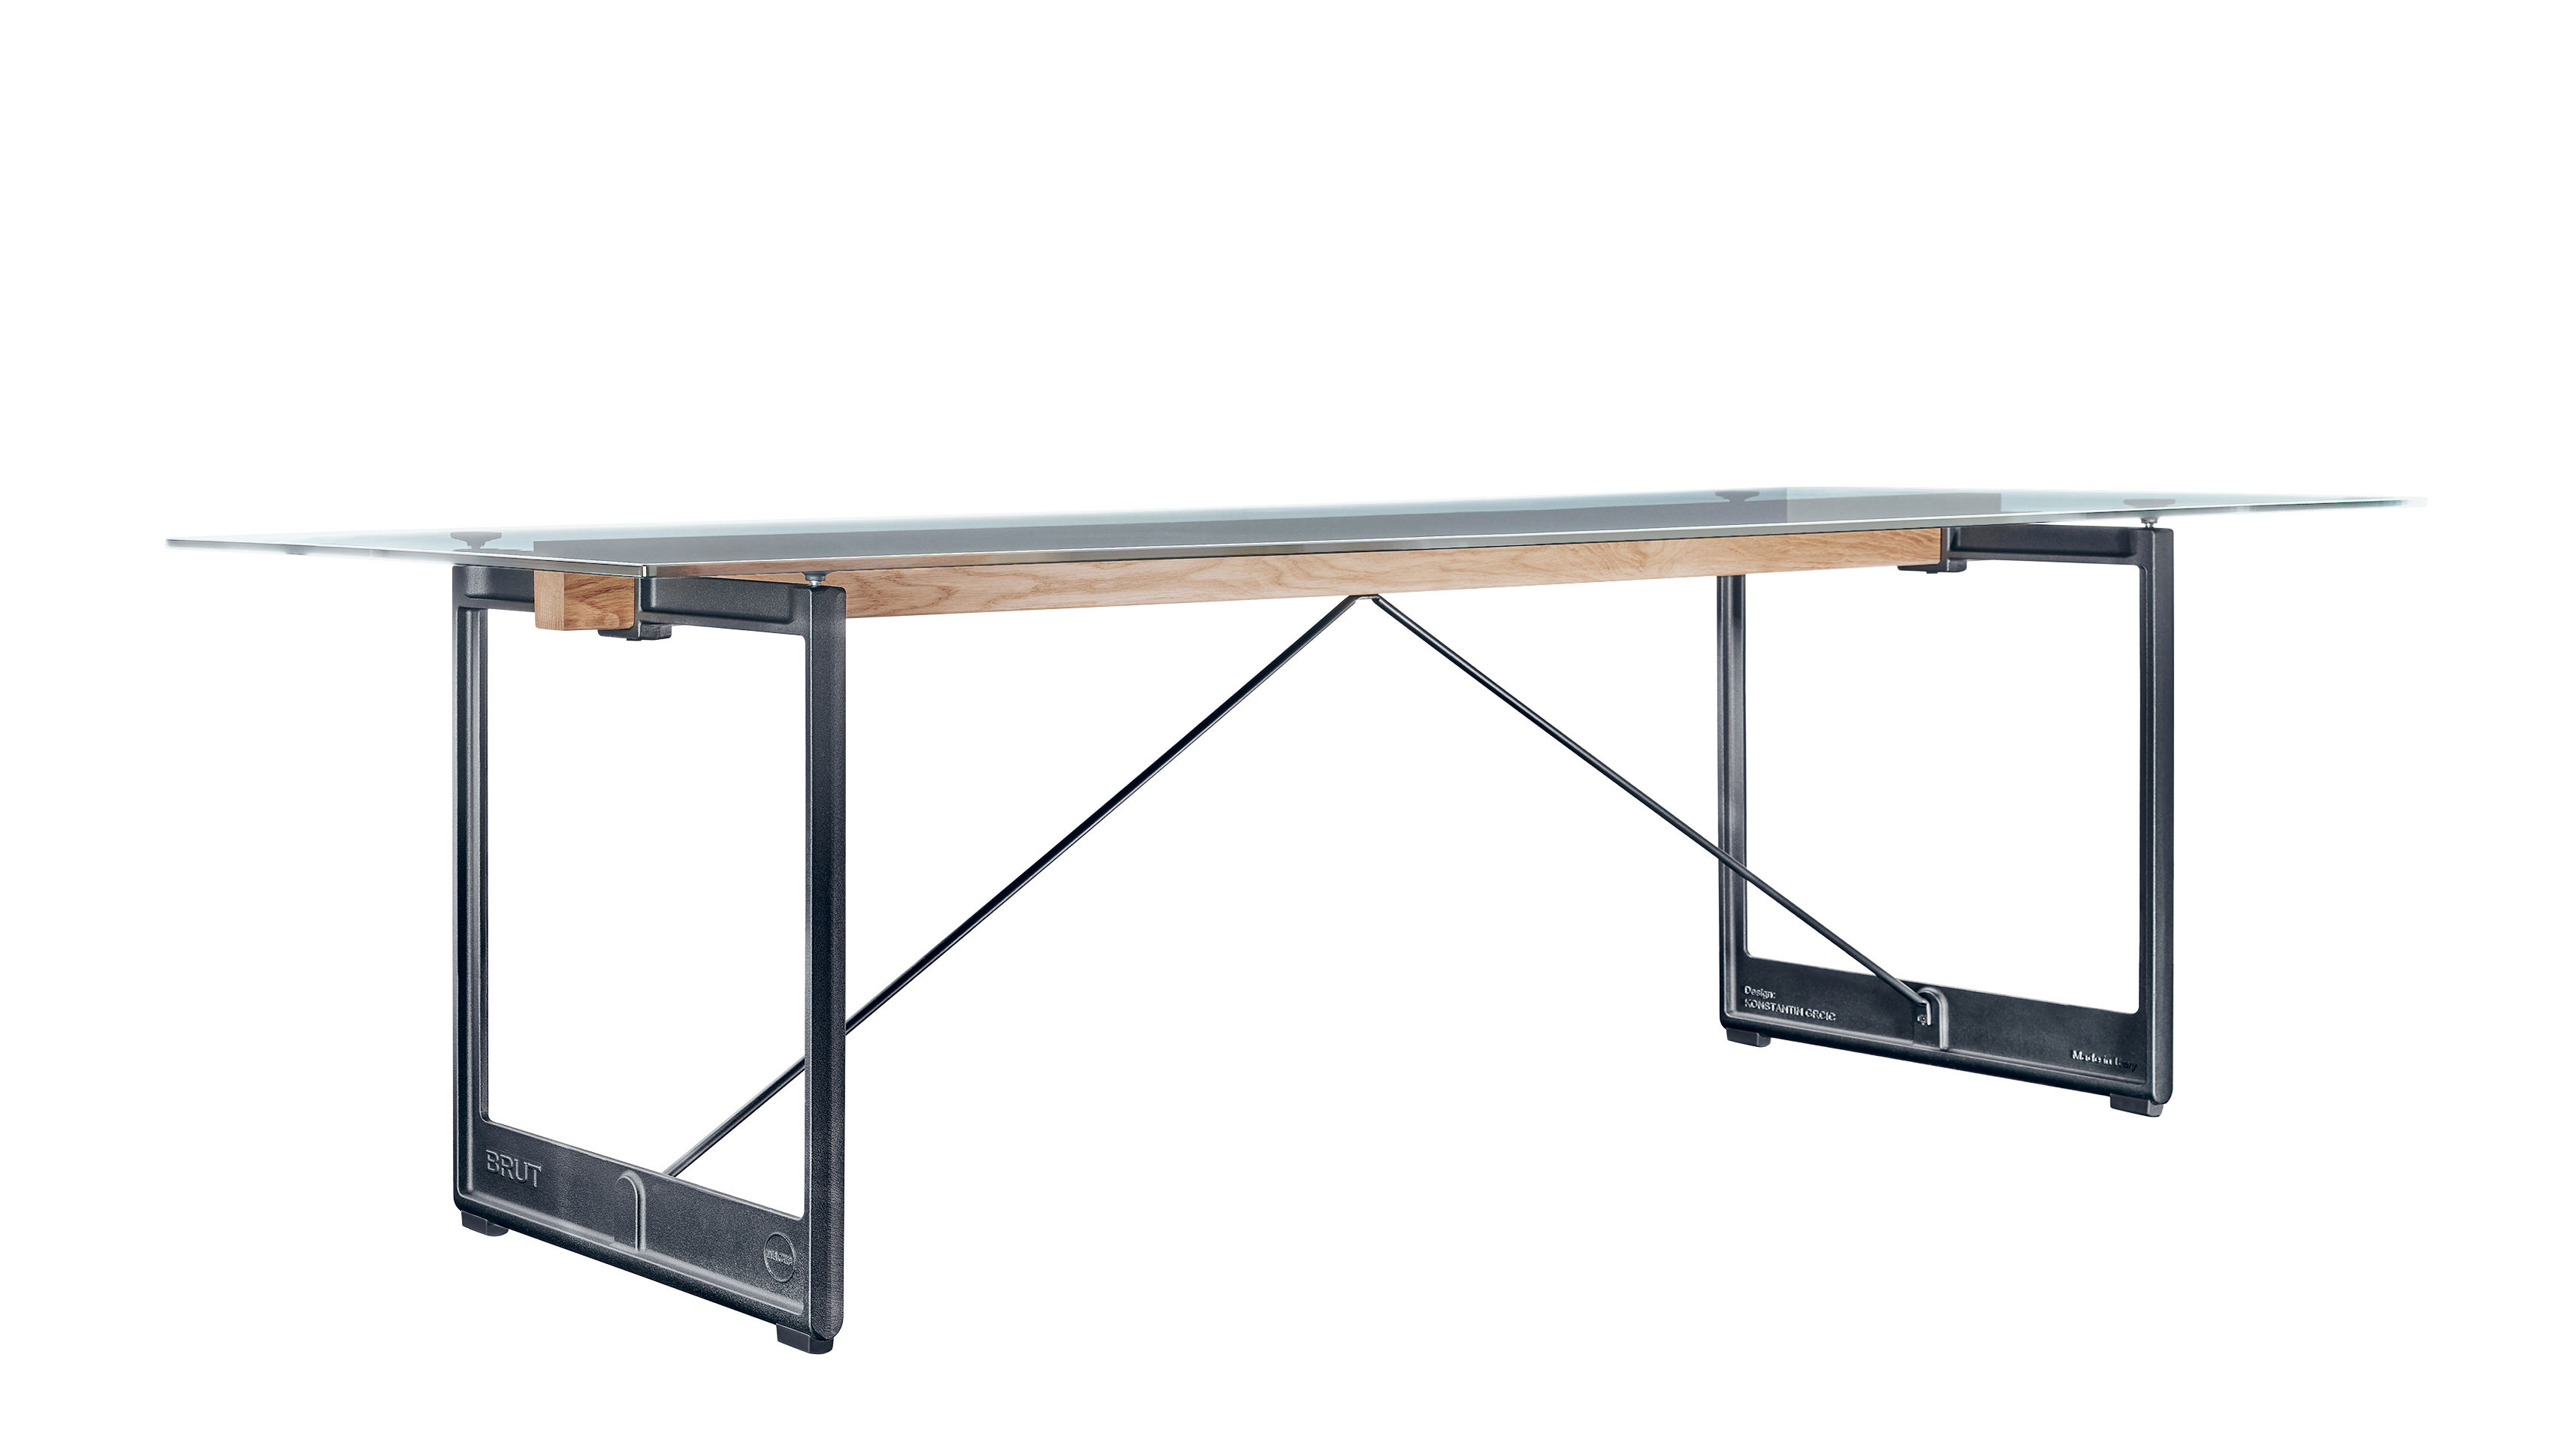 Furniture - Dining Tables - Brut Table - / Glass & cast iron - 260 x 85 cm by Magis - Transparent / Anthracite base - Fonte vernie, Soak glass